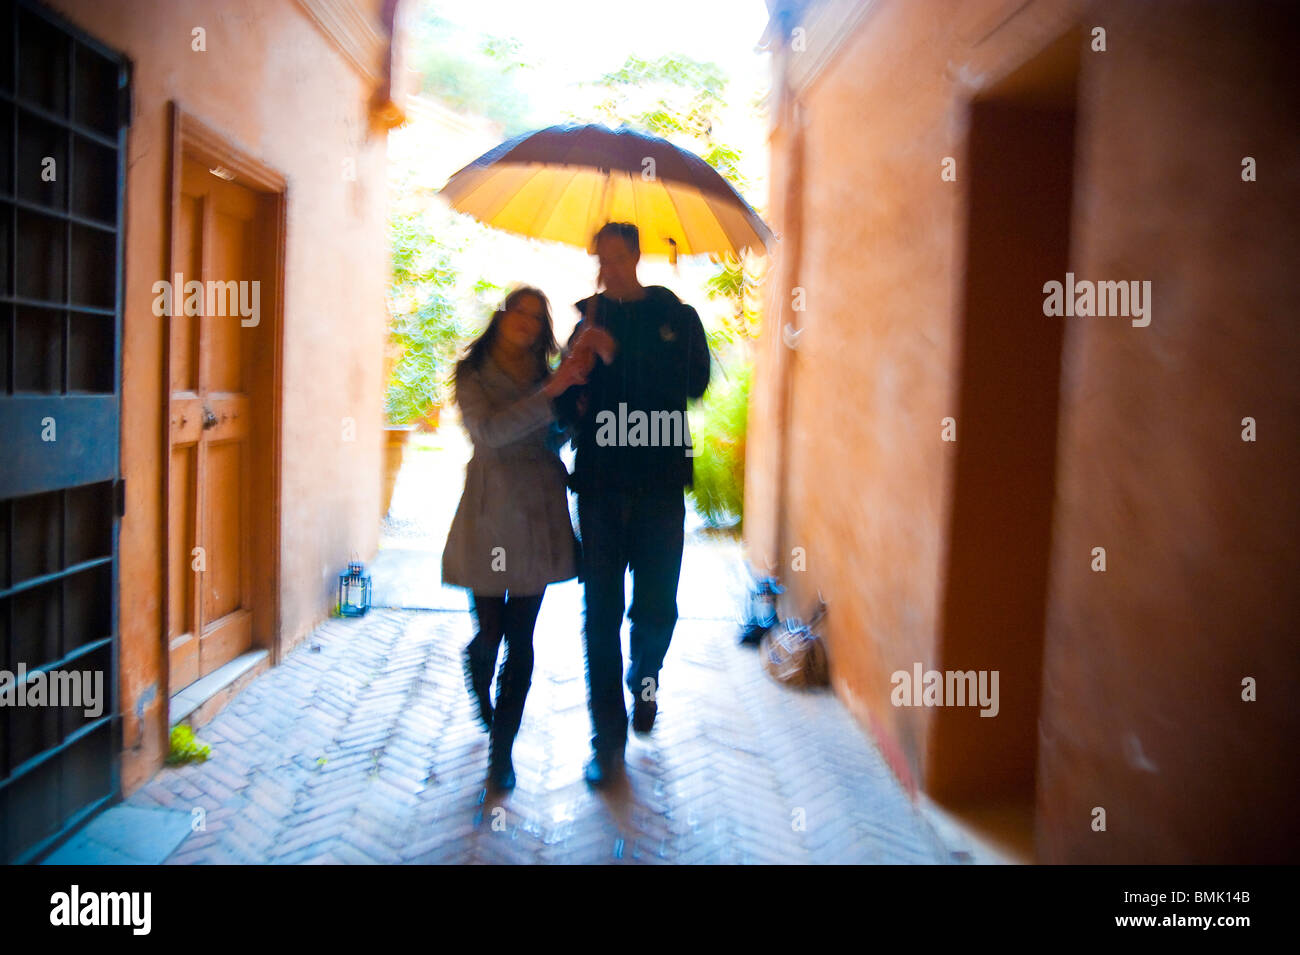 Couple with motion blur walking together with an umbrella under the rain in Rome Italy - Stock Image